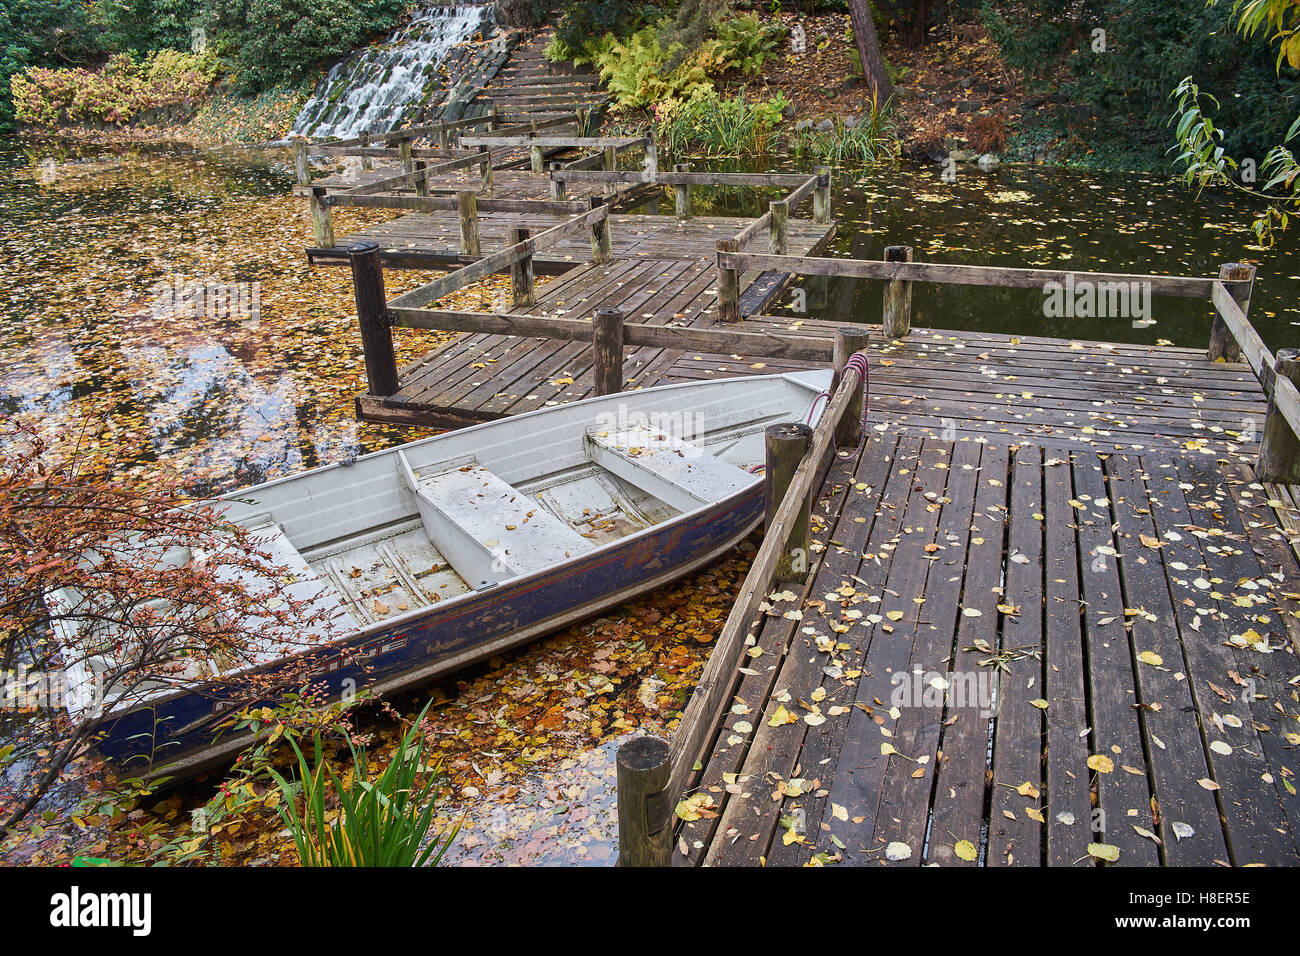 Autumn silence fallen leaves anchored boat quiet water - Stock Image